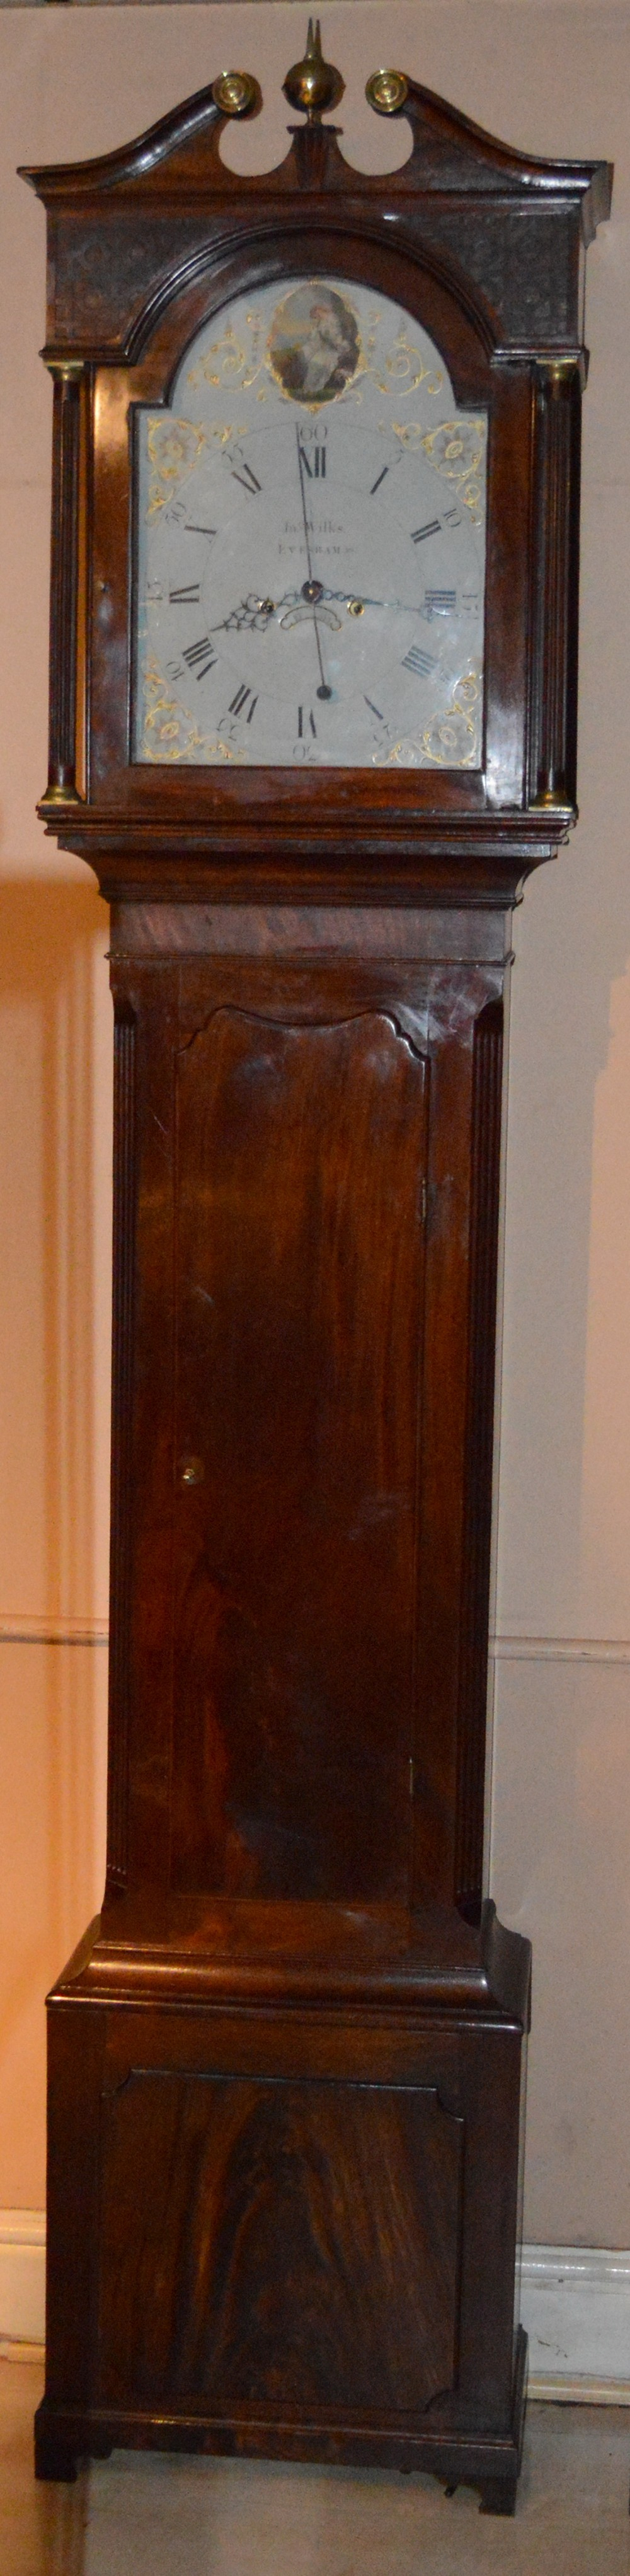 a georgian longcase clock by john wilkes of evesham